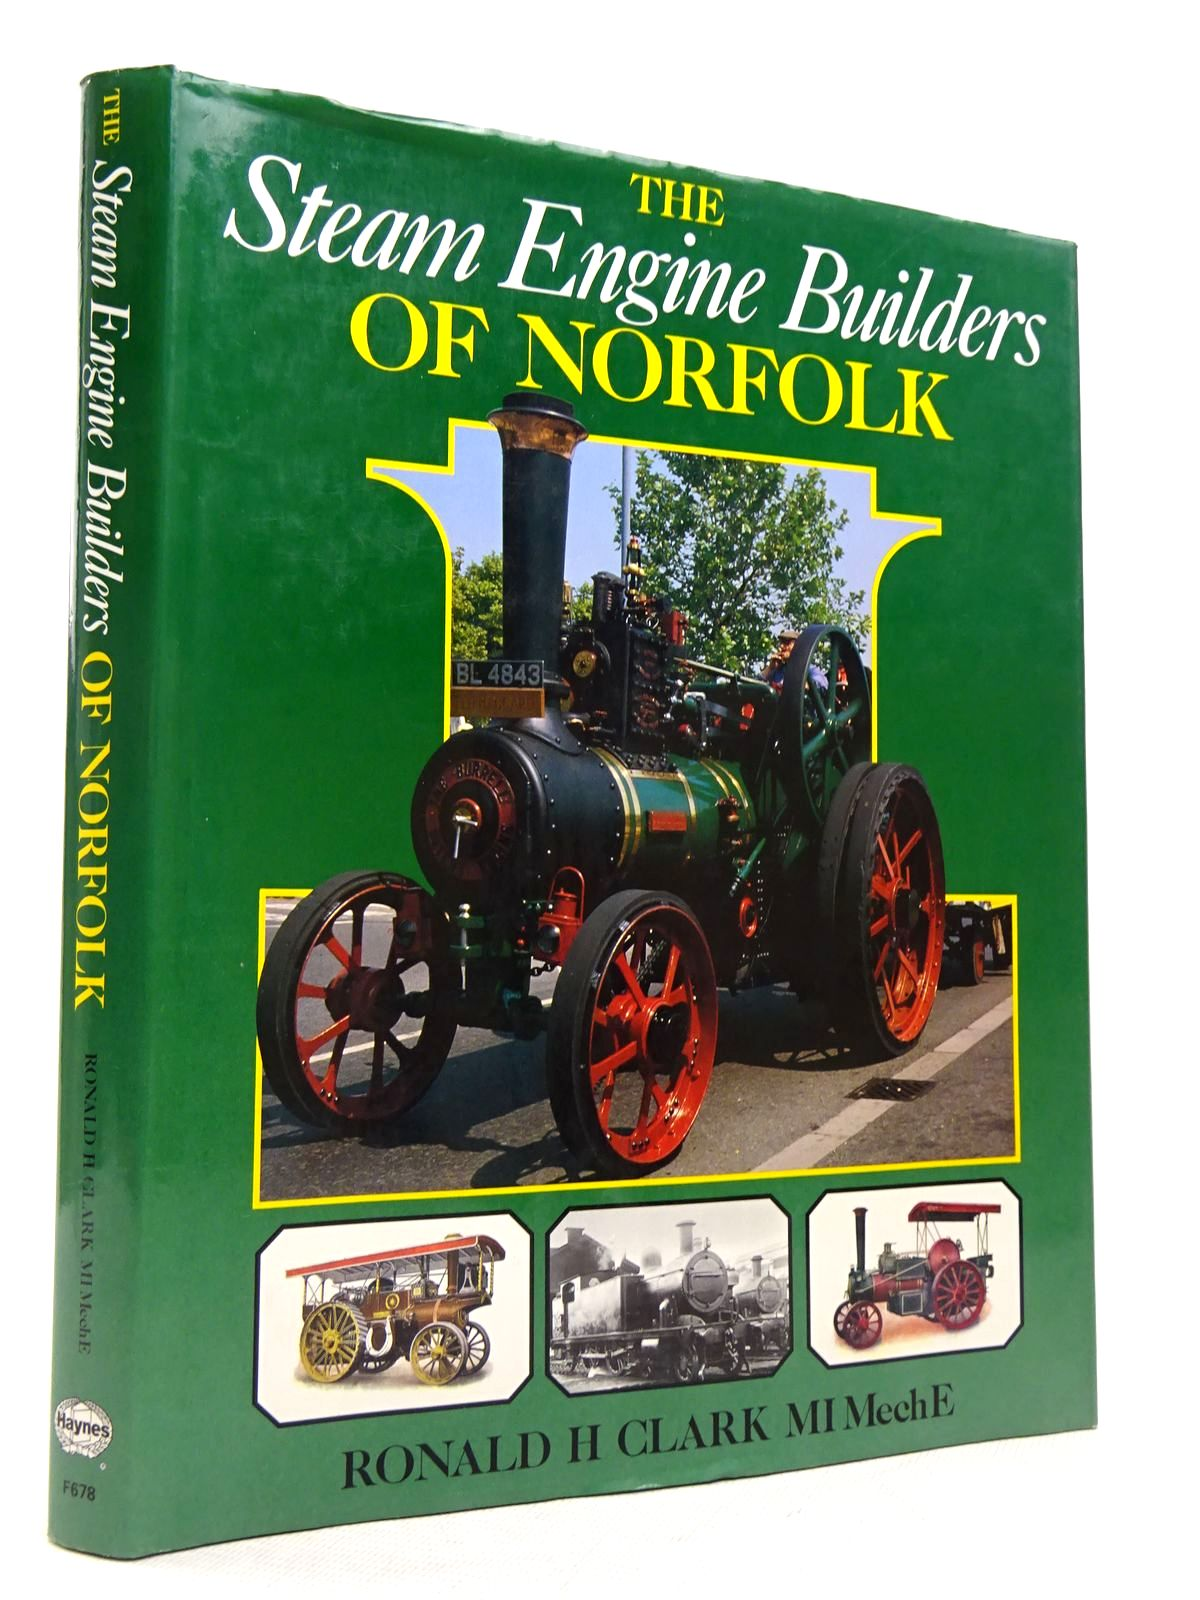 Photo of THE STEAM ENGINE BUILDERS OF NORFOLK